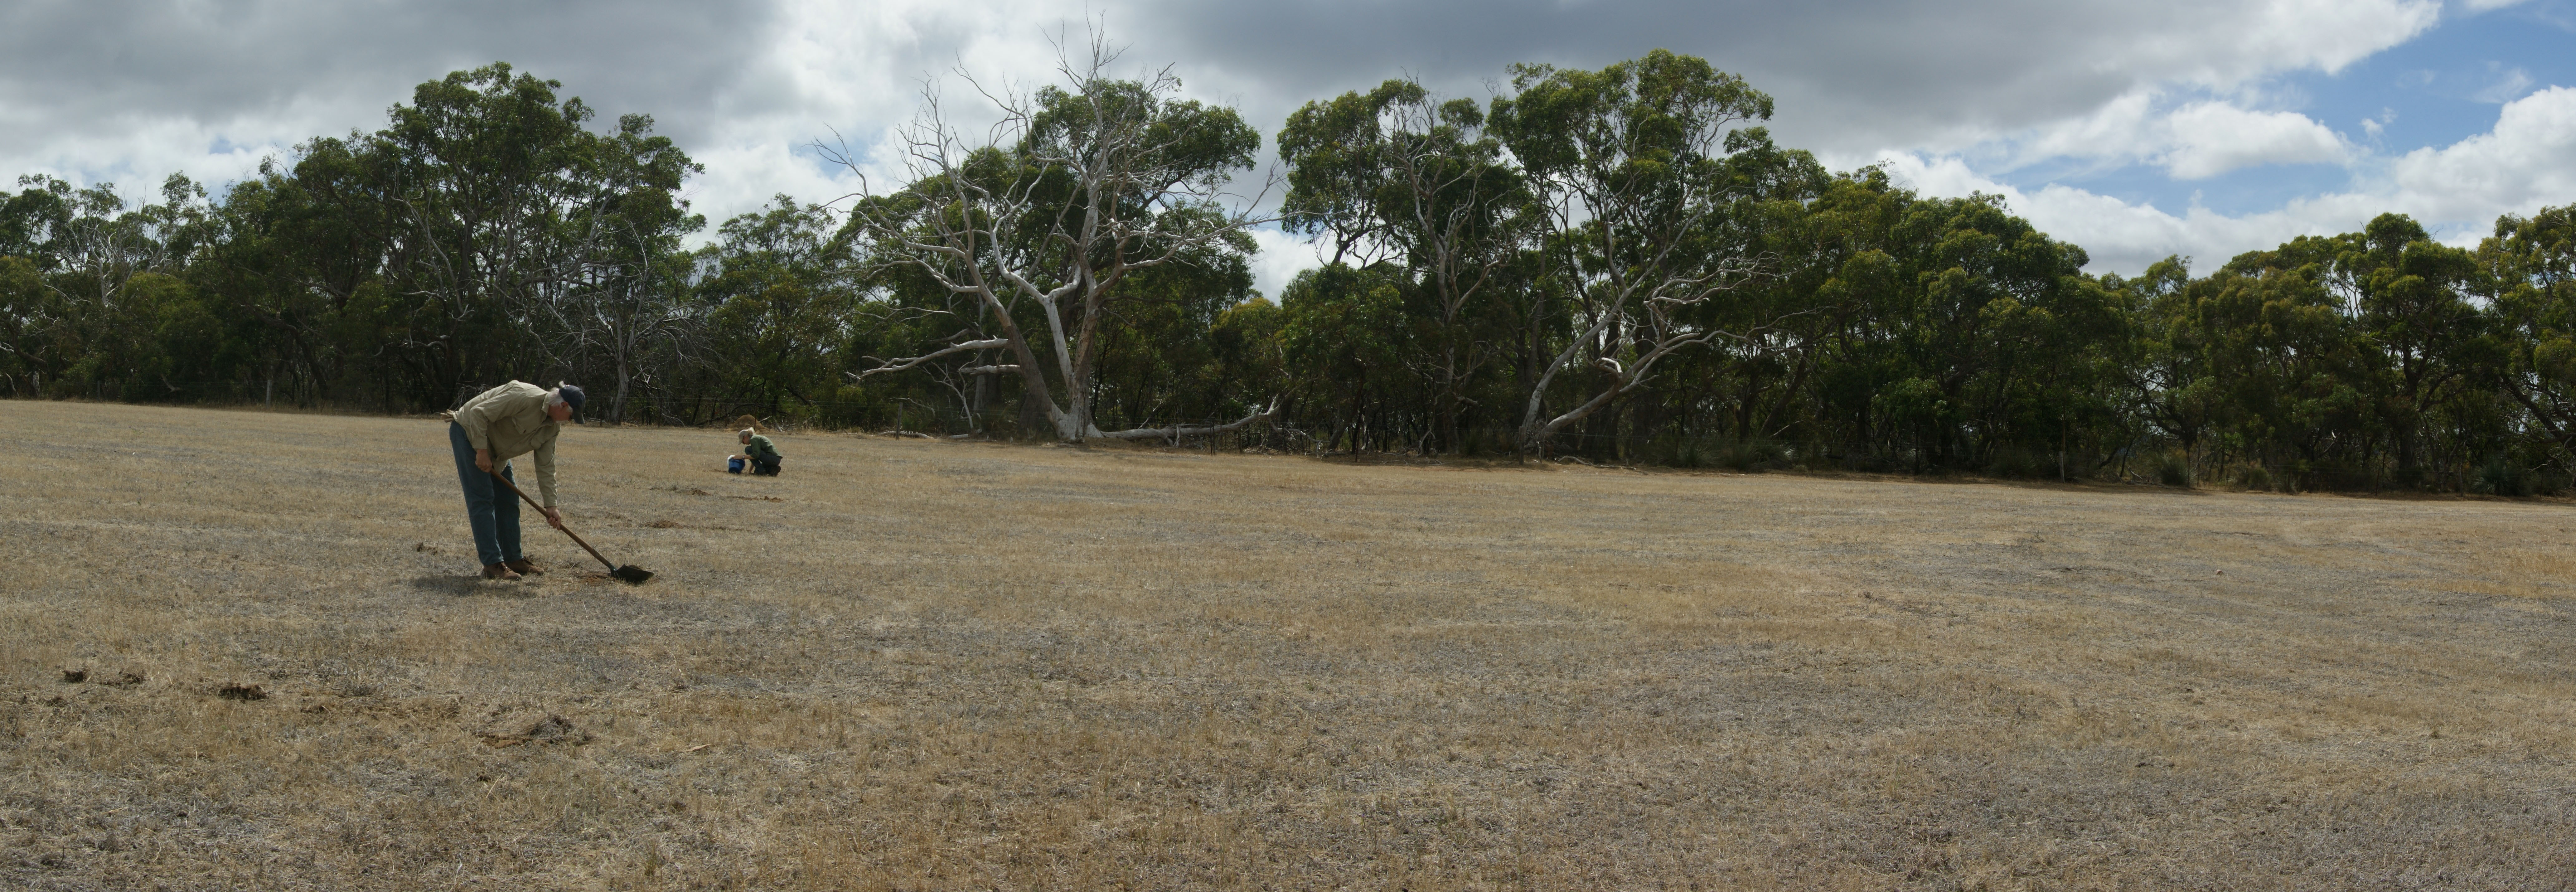 Restoring Land That Has Been Grazed for 100 Years